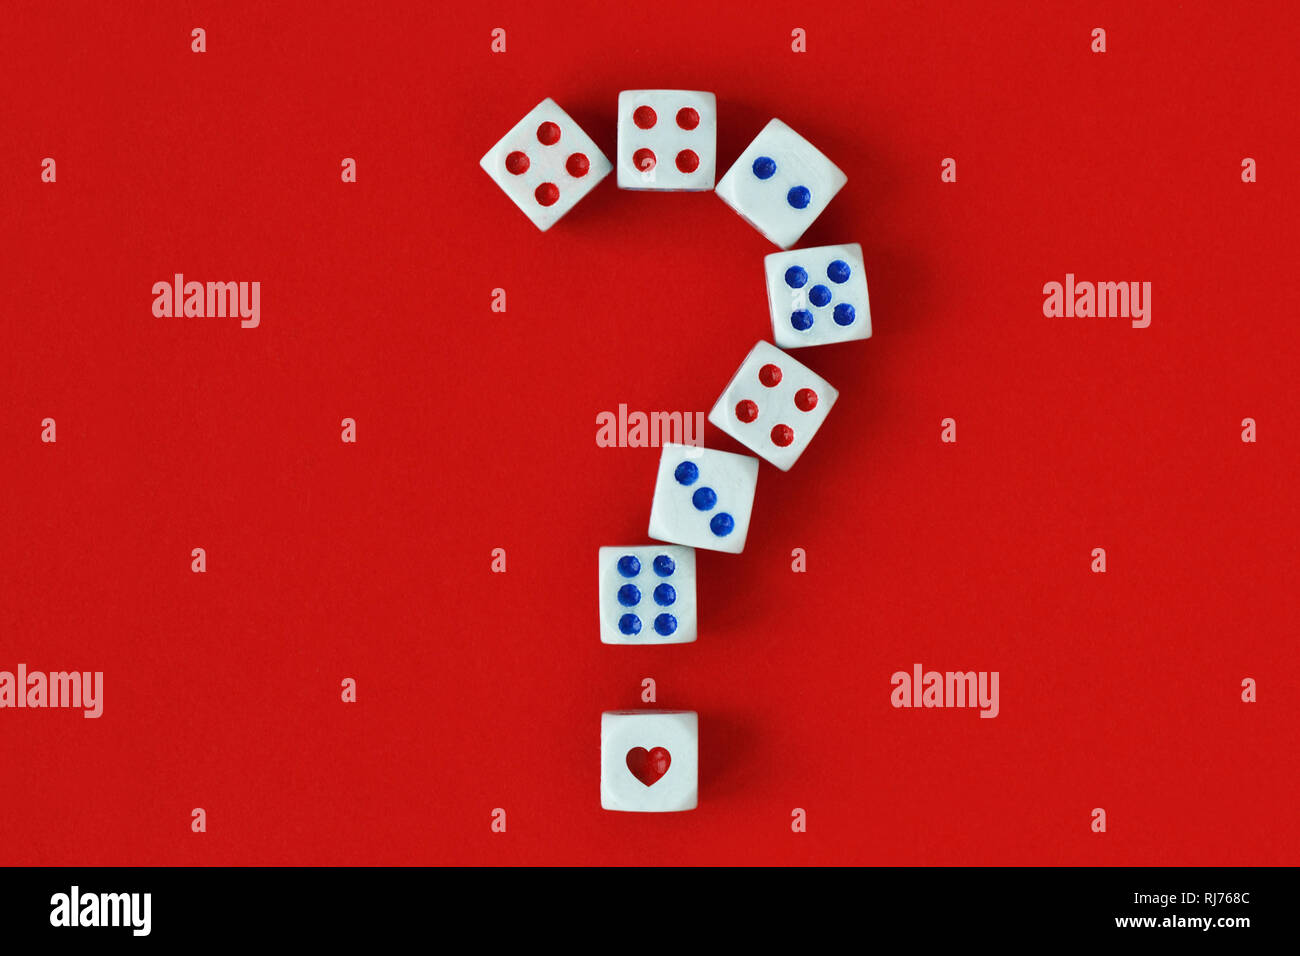 Question mark made of dices and heart on red background - Concept of risk and chance on love - Stock Image